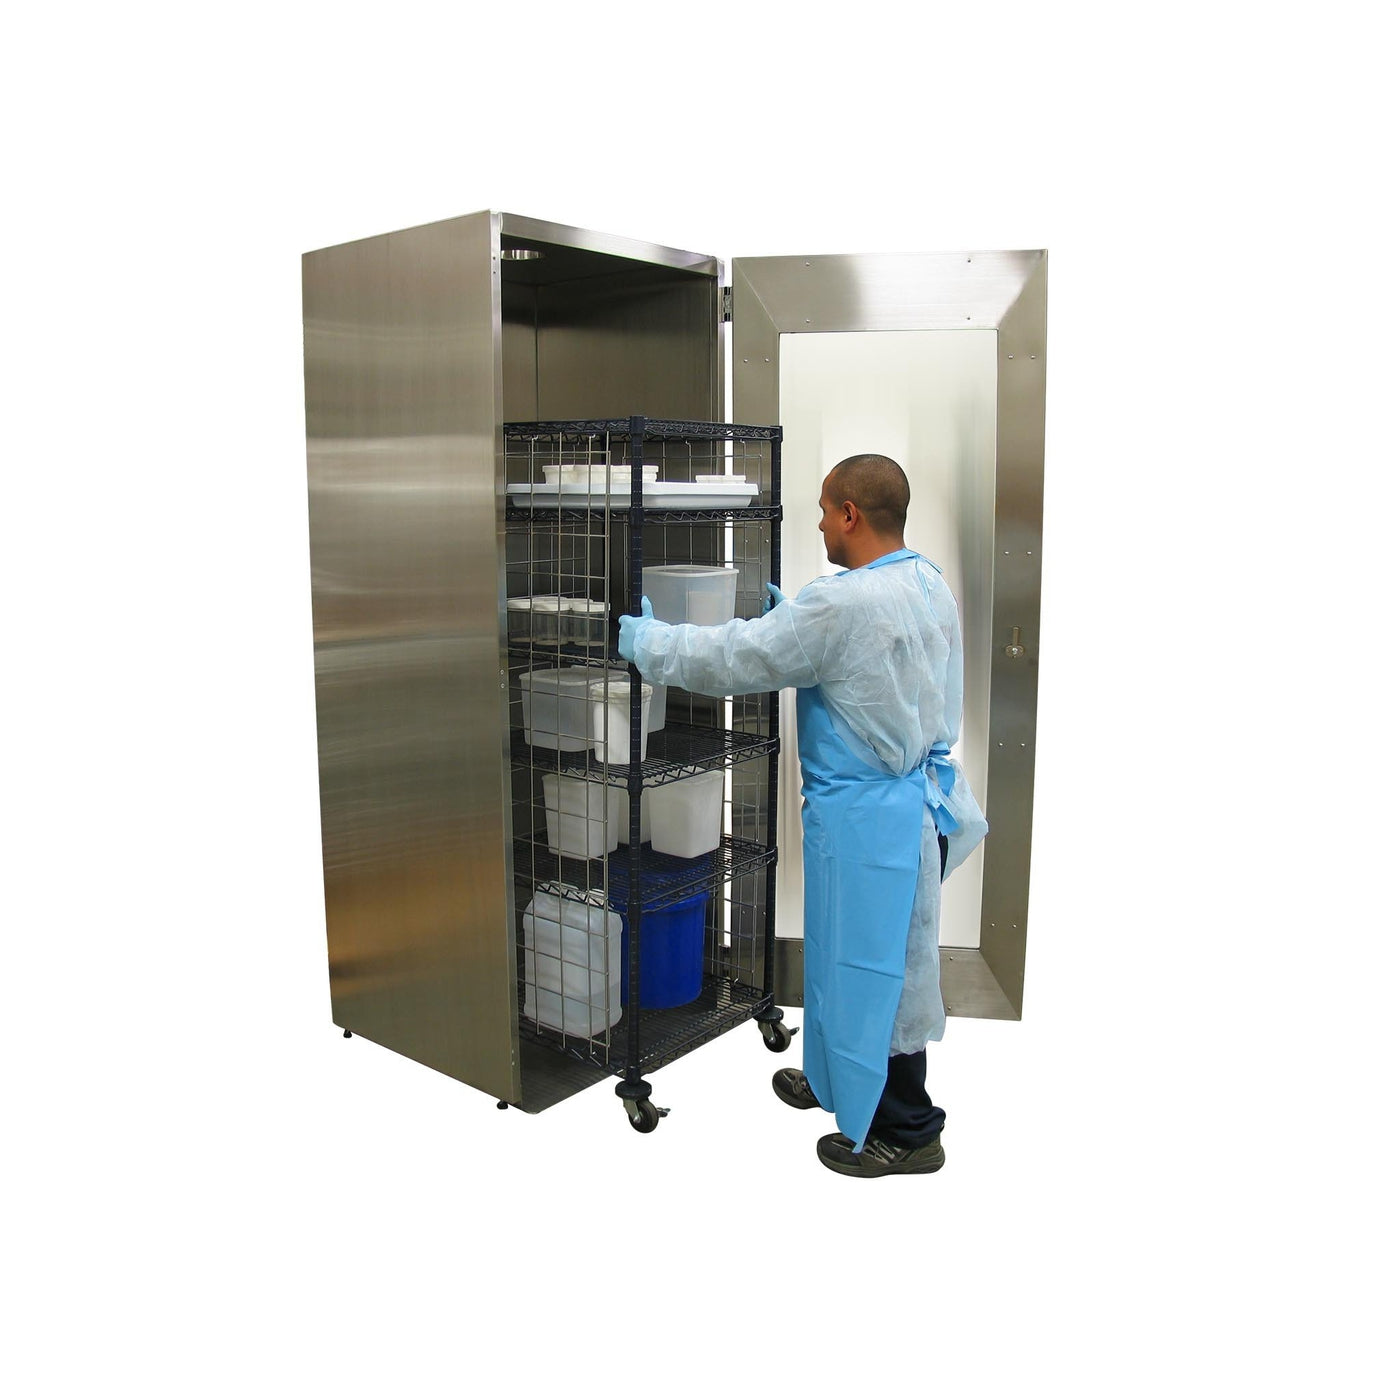 Ventilated Tissue Storage Cabinets-Sink Station-Mortech Manufacturing Company Inc. Quality Stainless Steel Autopsy, Morgue, Funeral Home, Necropsy, Veterinary / Anatomy, Dissection Equipment and Accessories